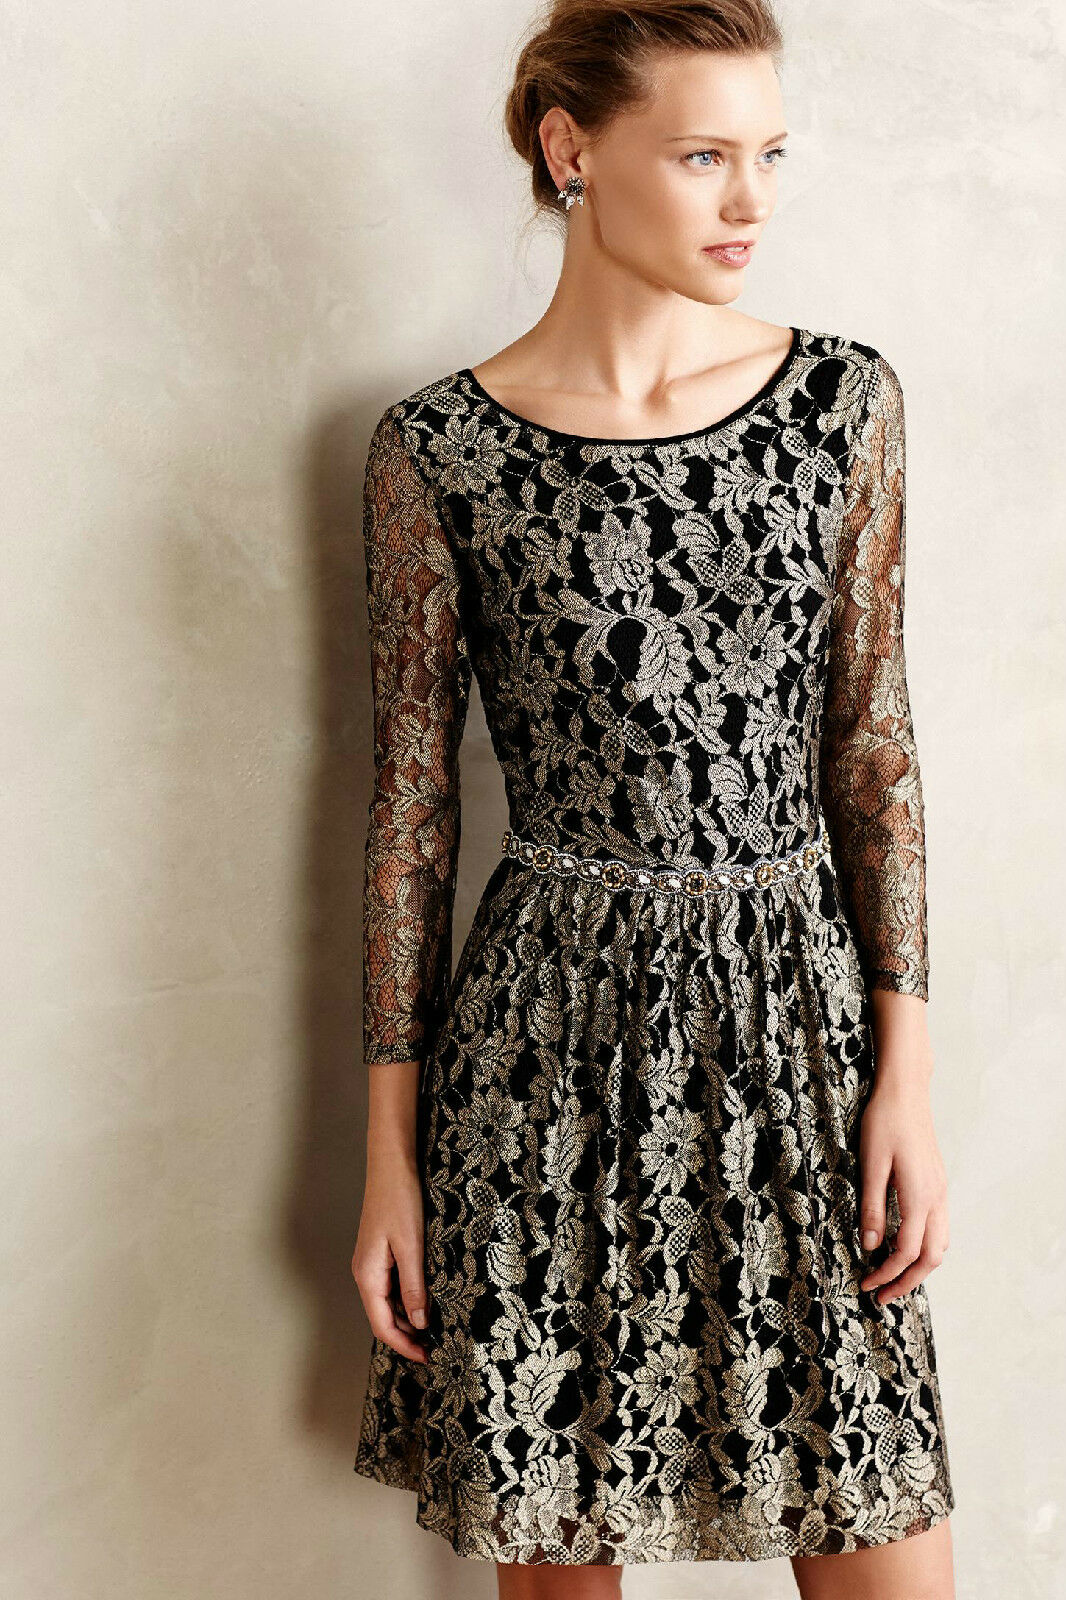 NEW 2 Anthropologie Shimmered Lacefall Dress by Maeve Flattering Gorgeous